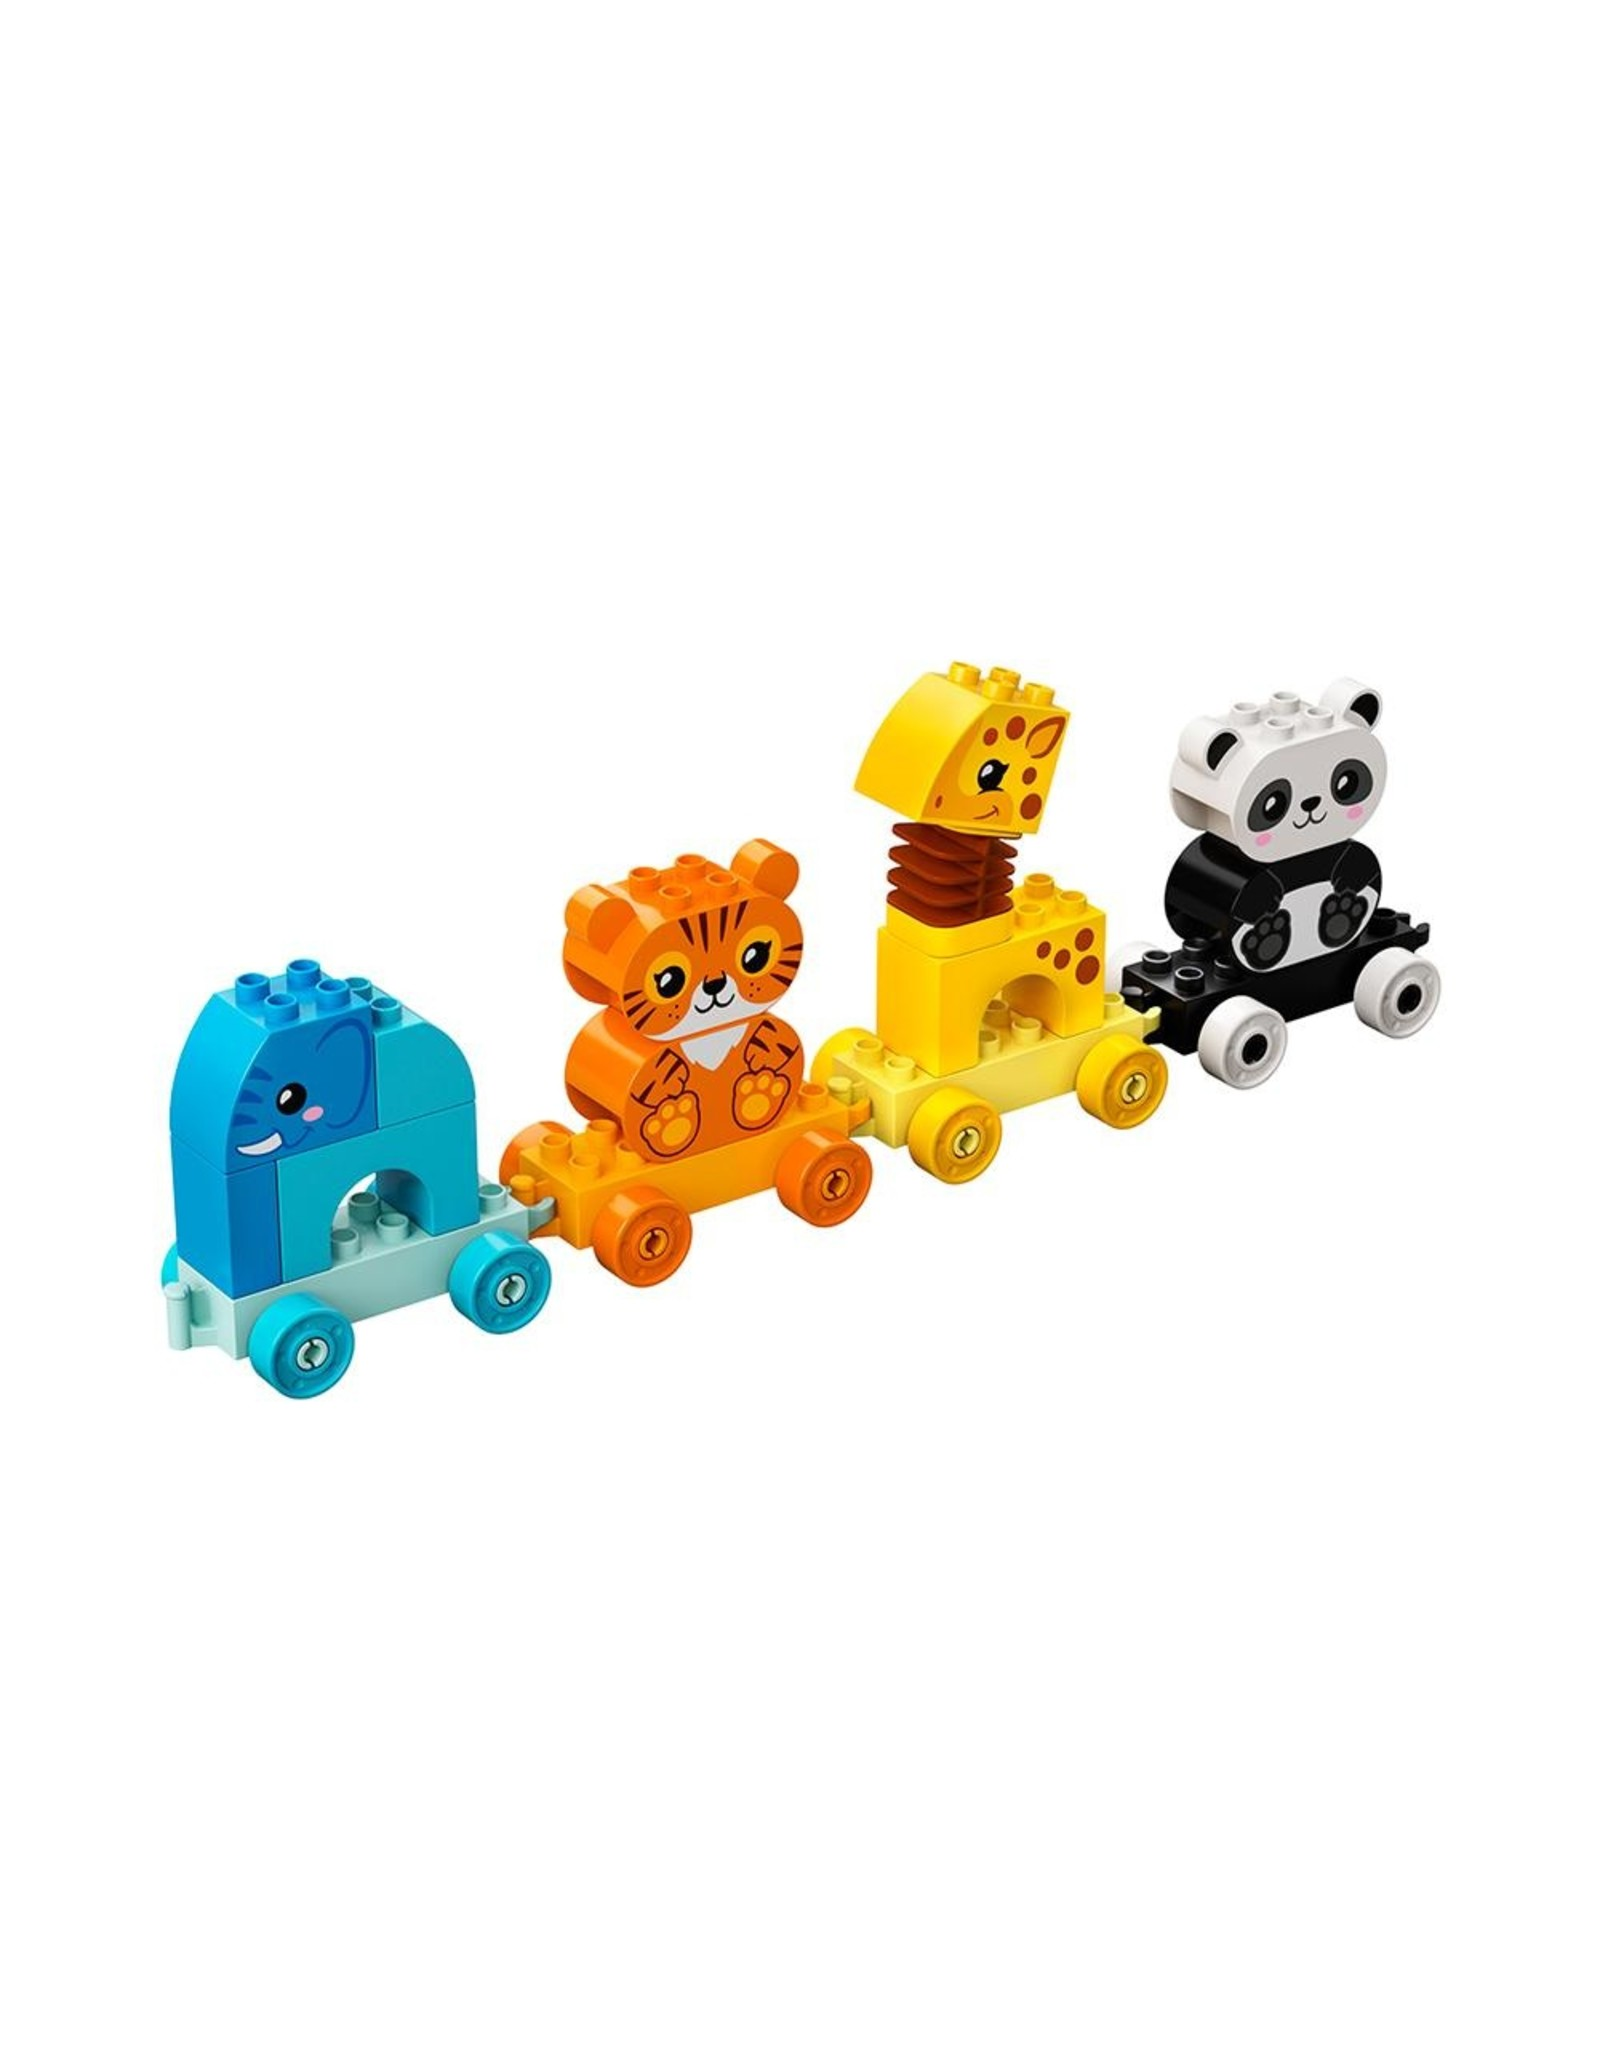 LEGO Duplo 10955 Animal Train